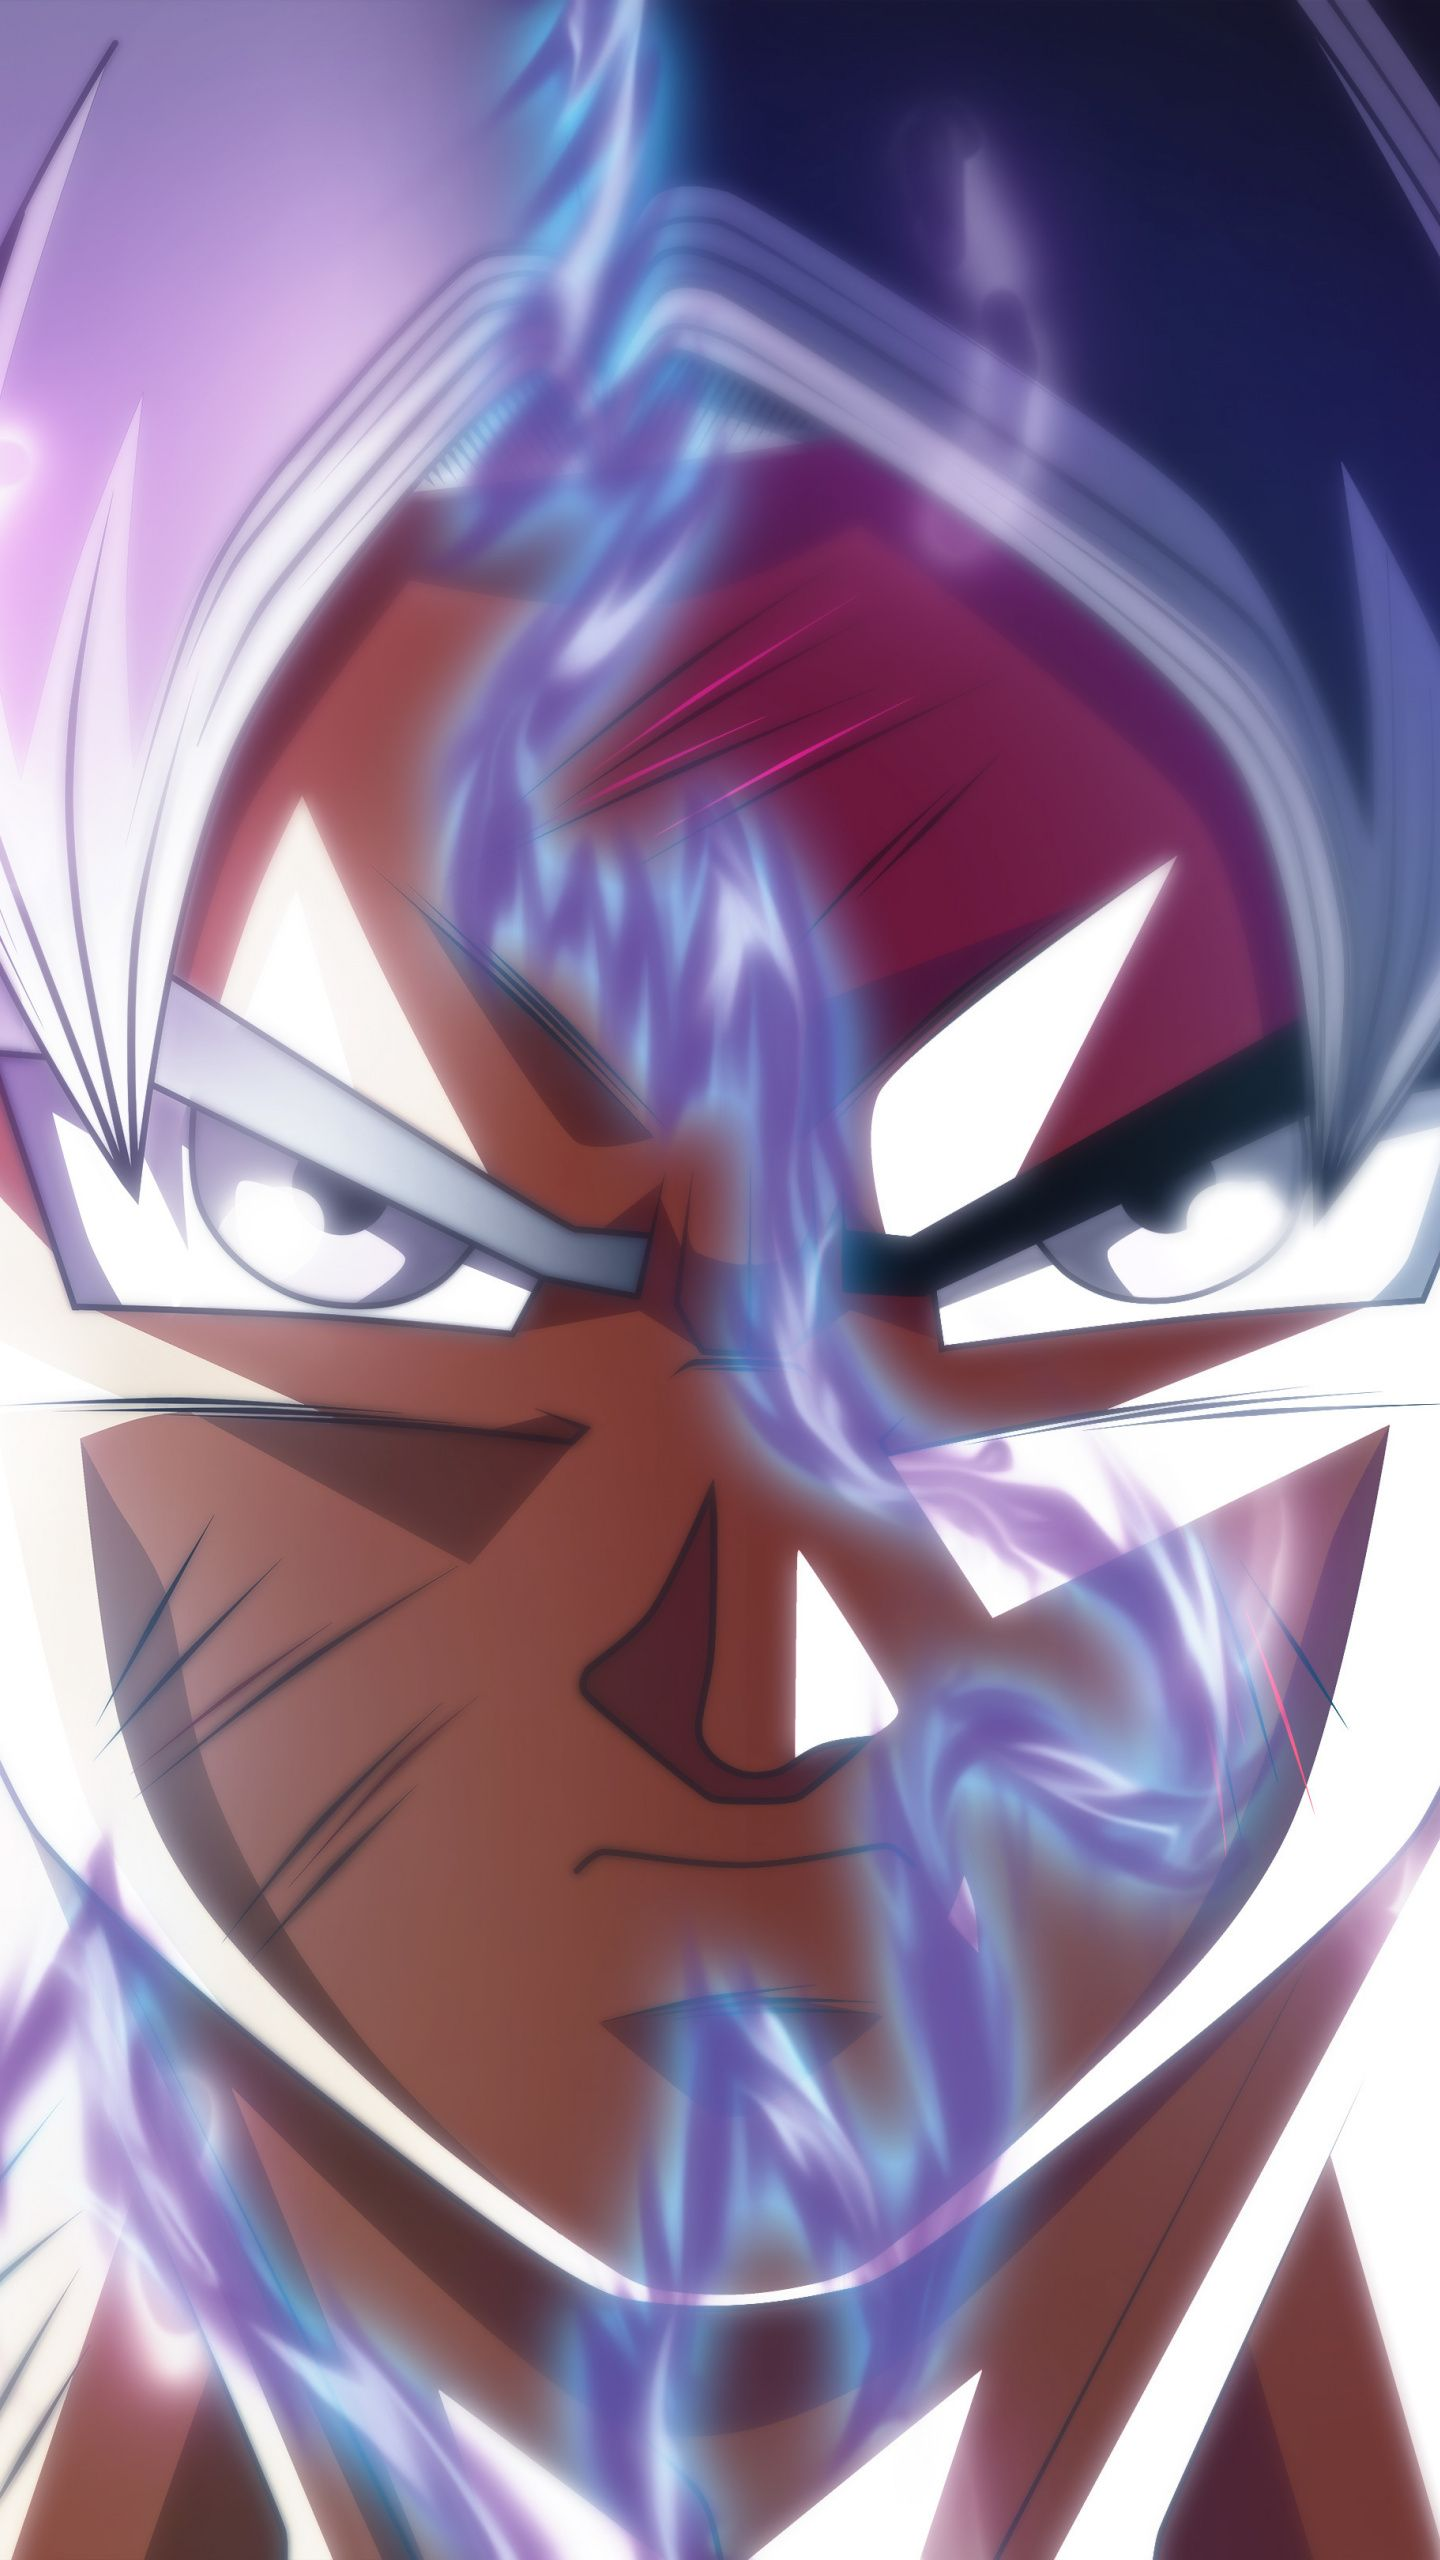 Download 1440x2560 Wallpaper Goku Face Off Ultra Instinct Dragon Ball Super 5k Qhd Samsung Gala Anime Dragon Ball Super Anime Dragon Ball Dragon Ball Goku